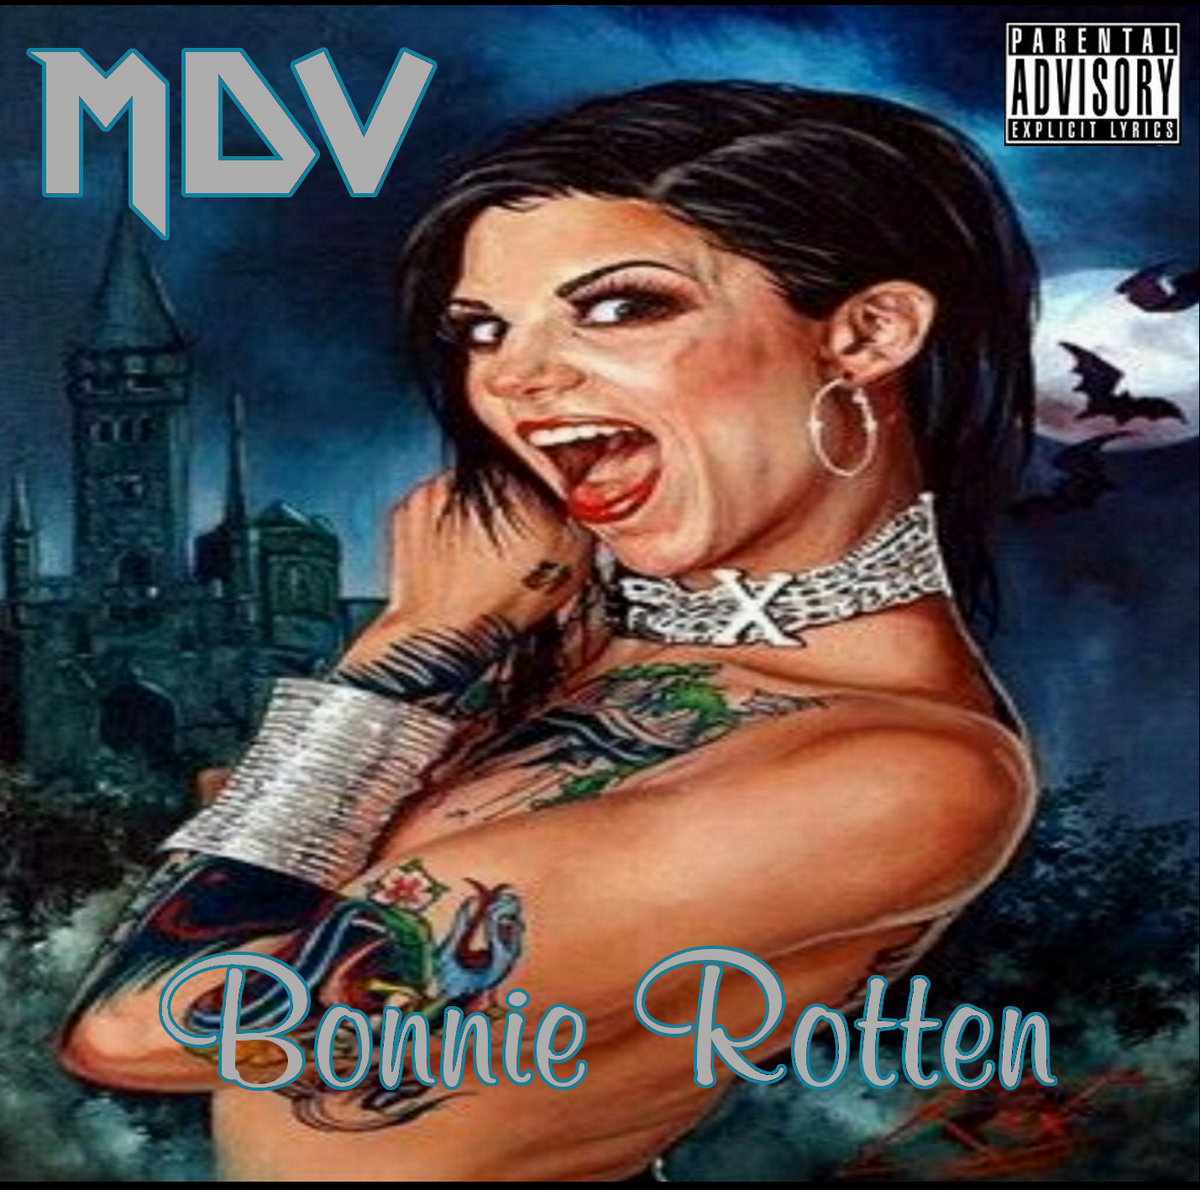 Ronnie rotten